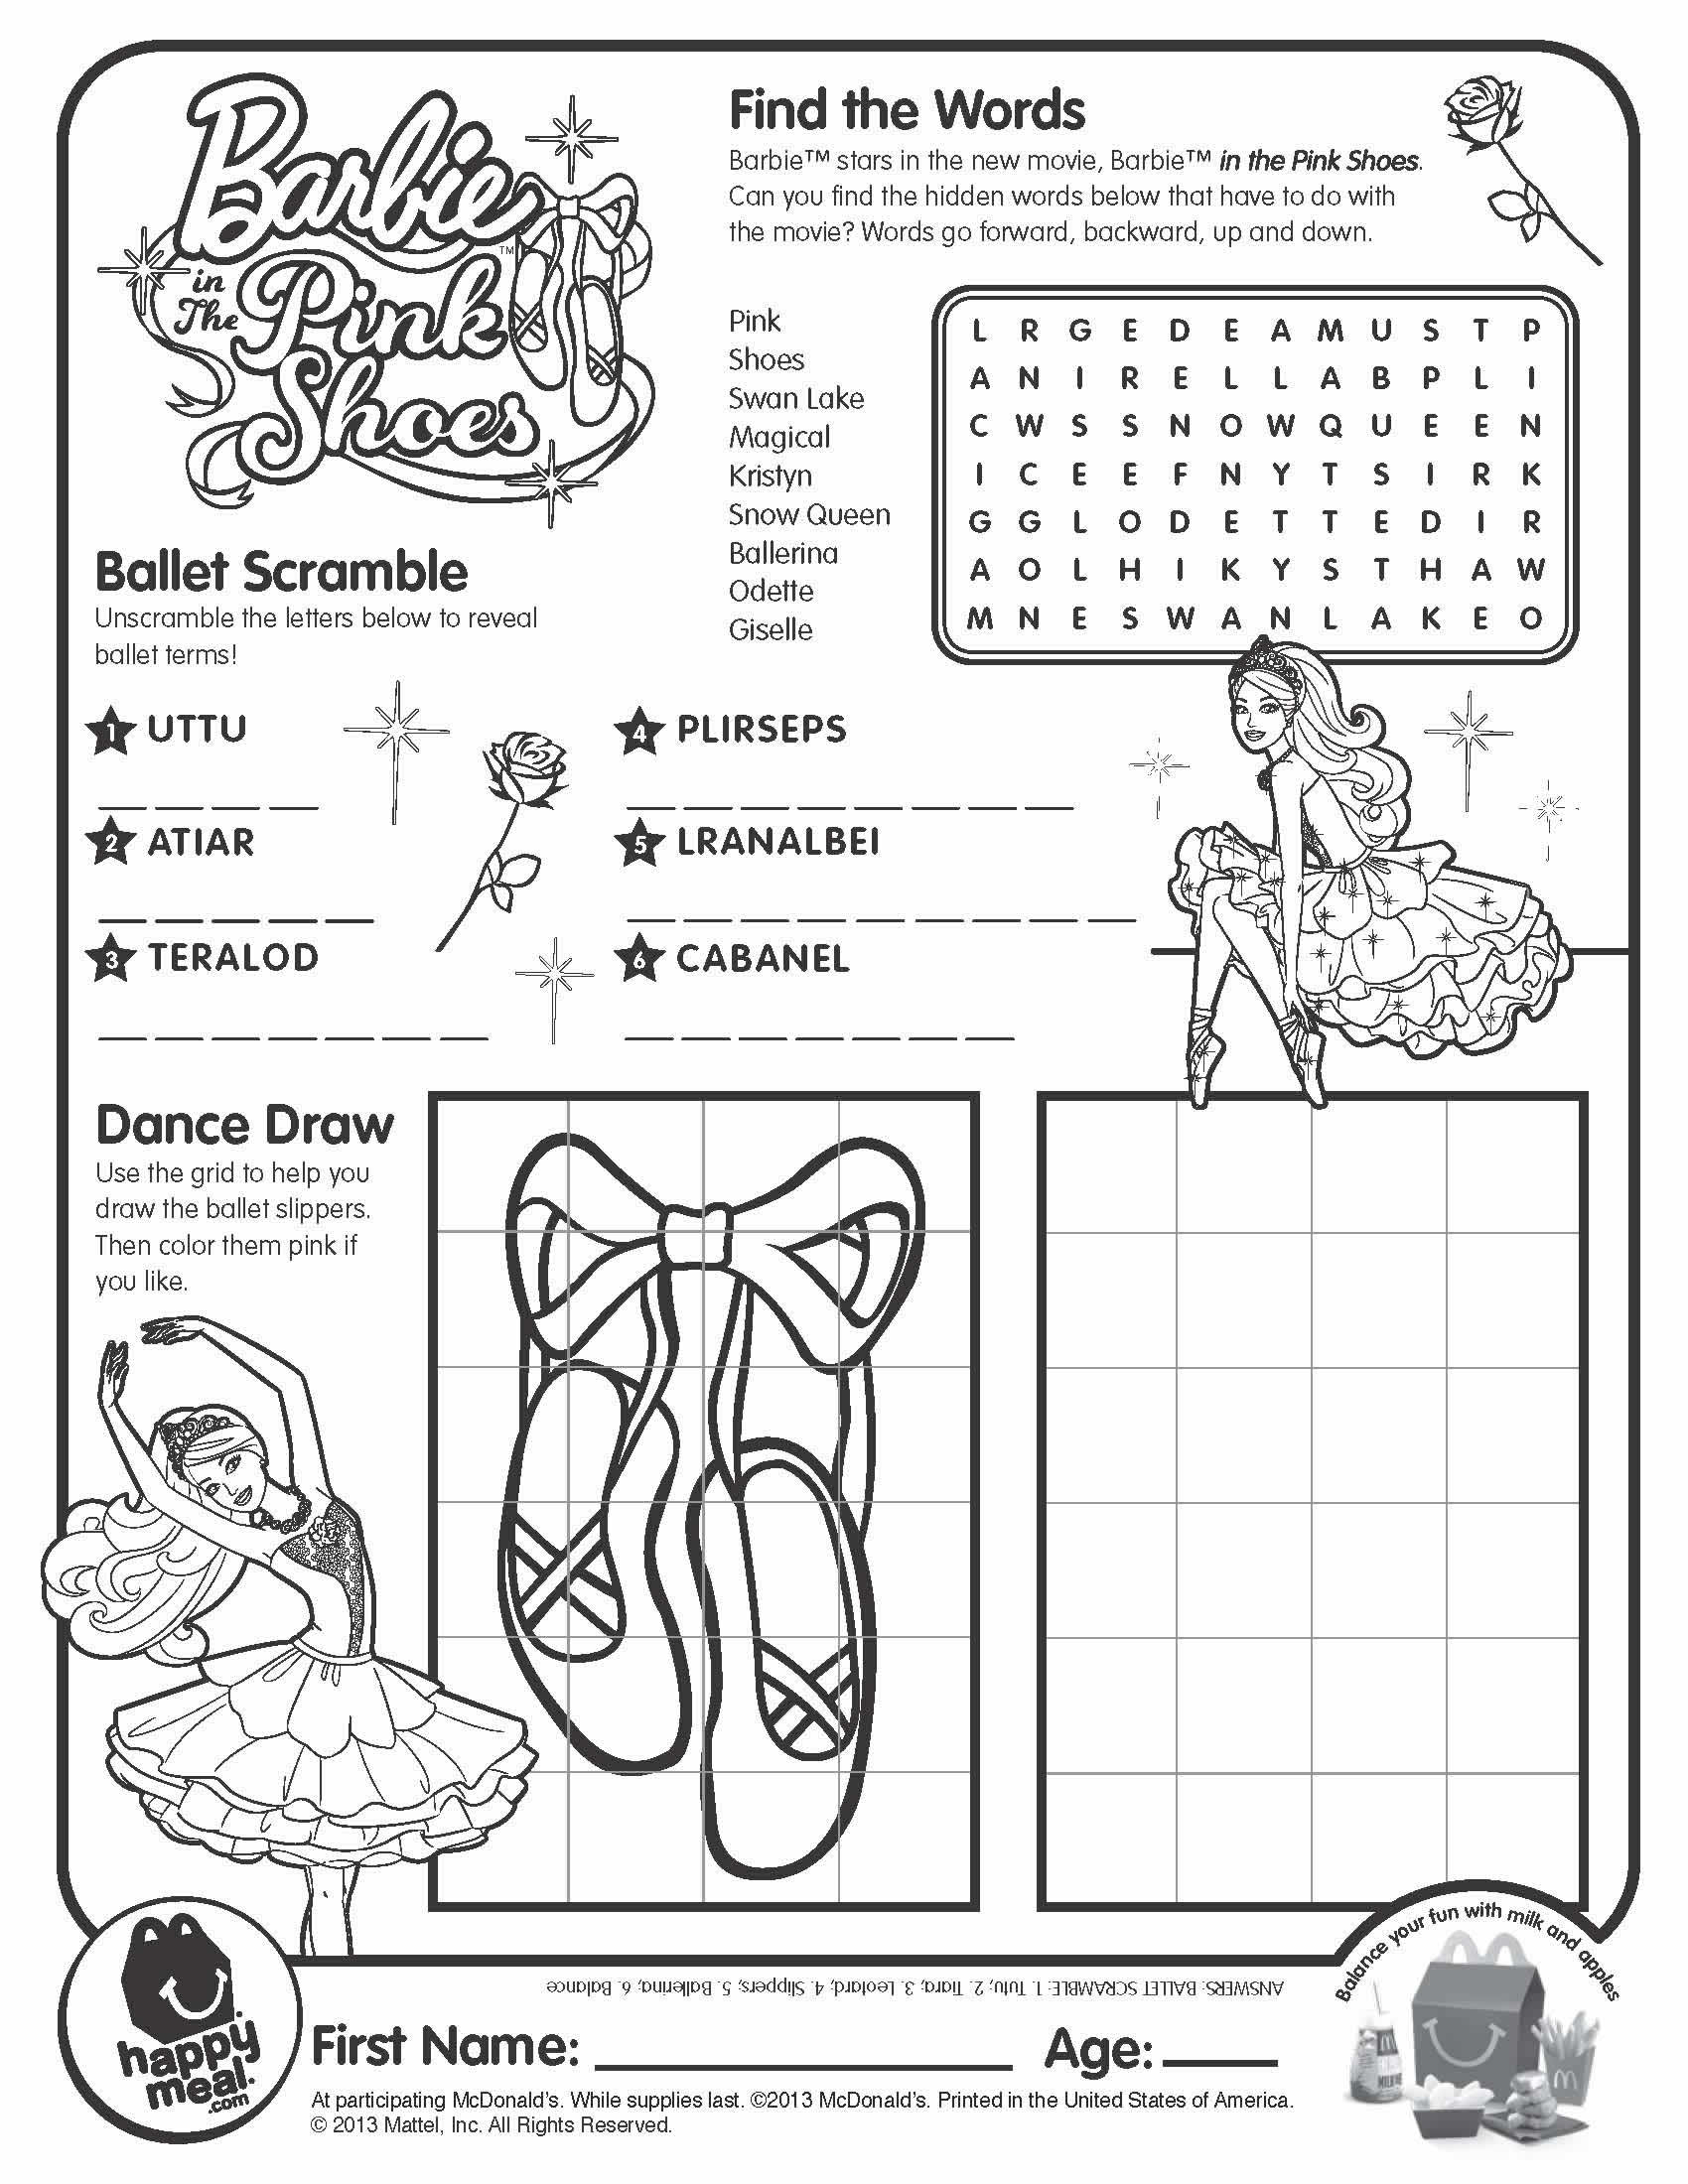 Barbie Pink Shoes Coloring Pages